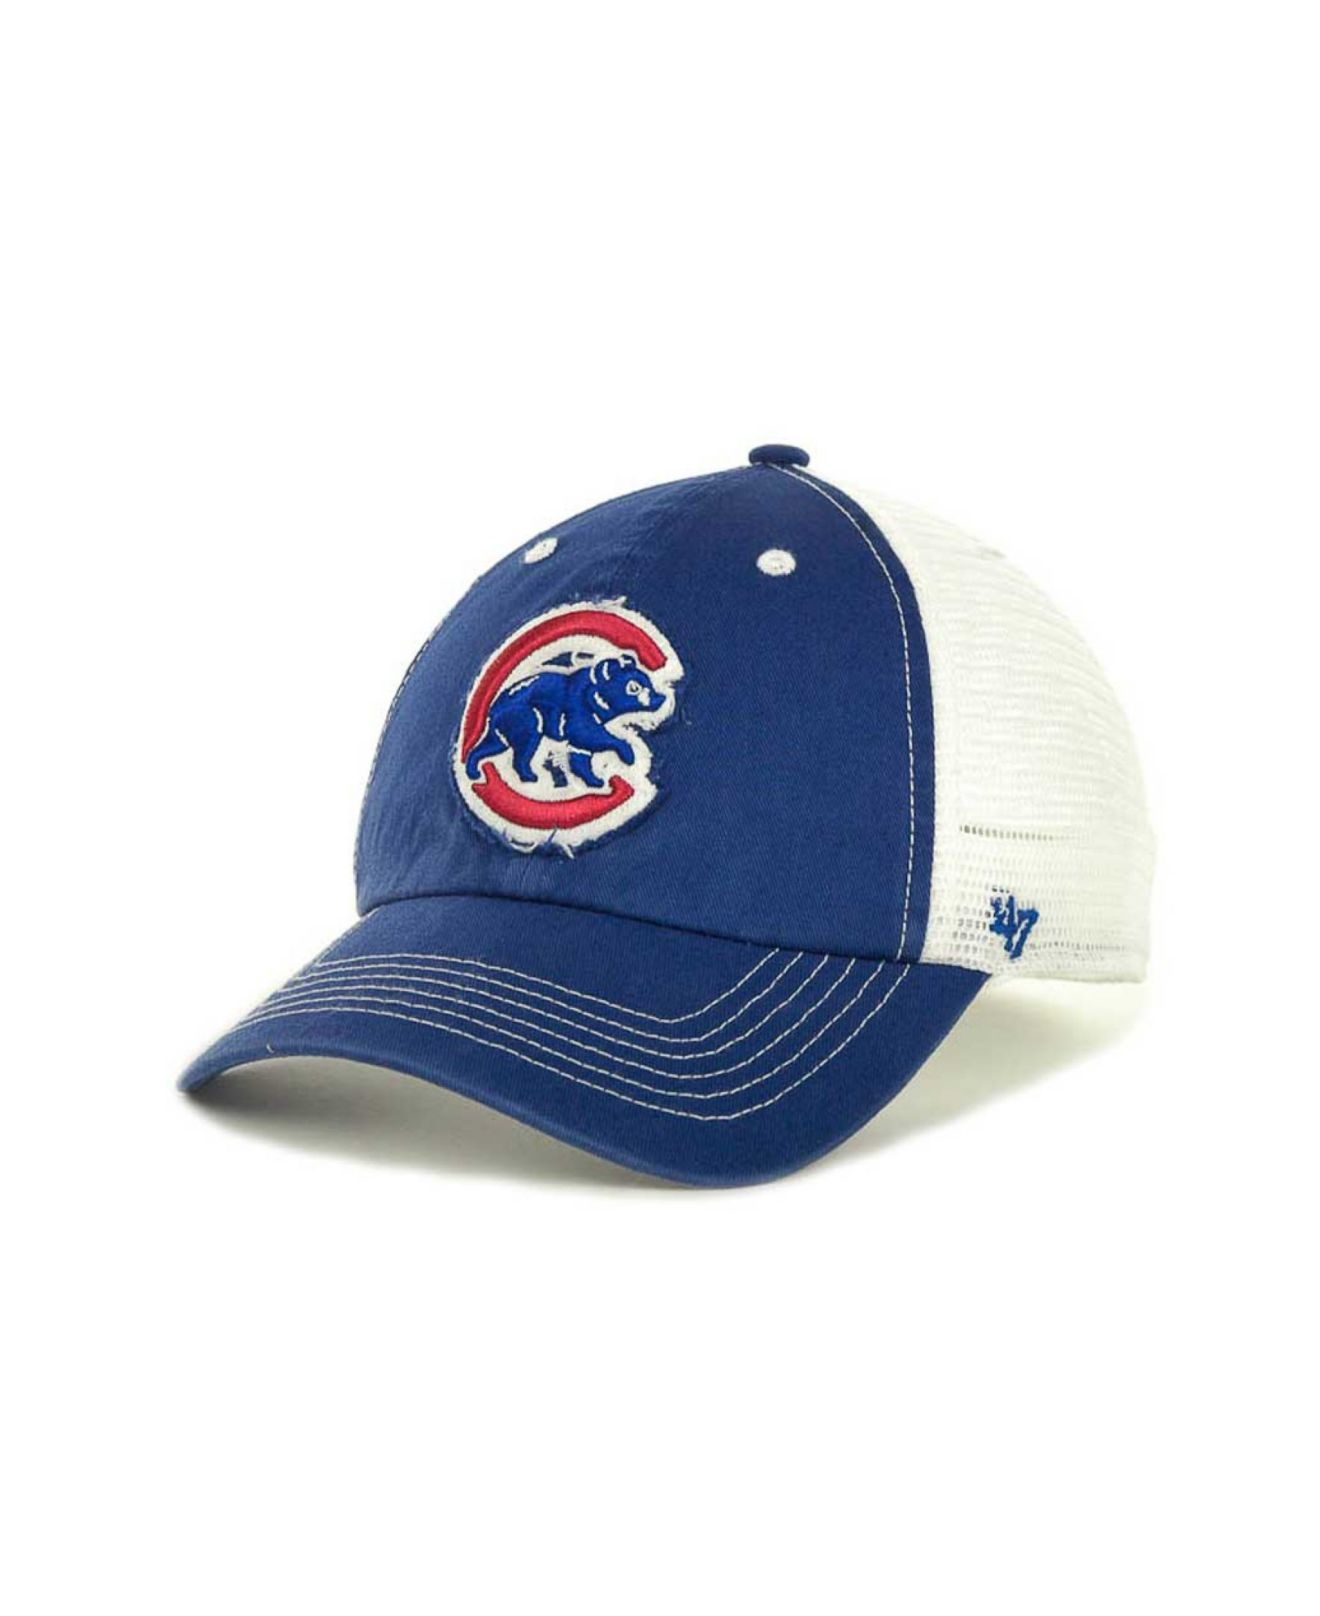 ... ireland lyst 47 brand chicago cubs blue mountain franchise cap in blue  for men 78ede 6811d e3b4b36896f6